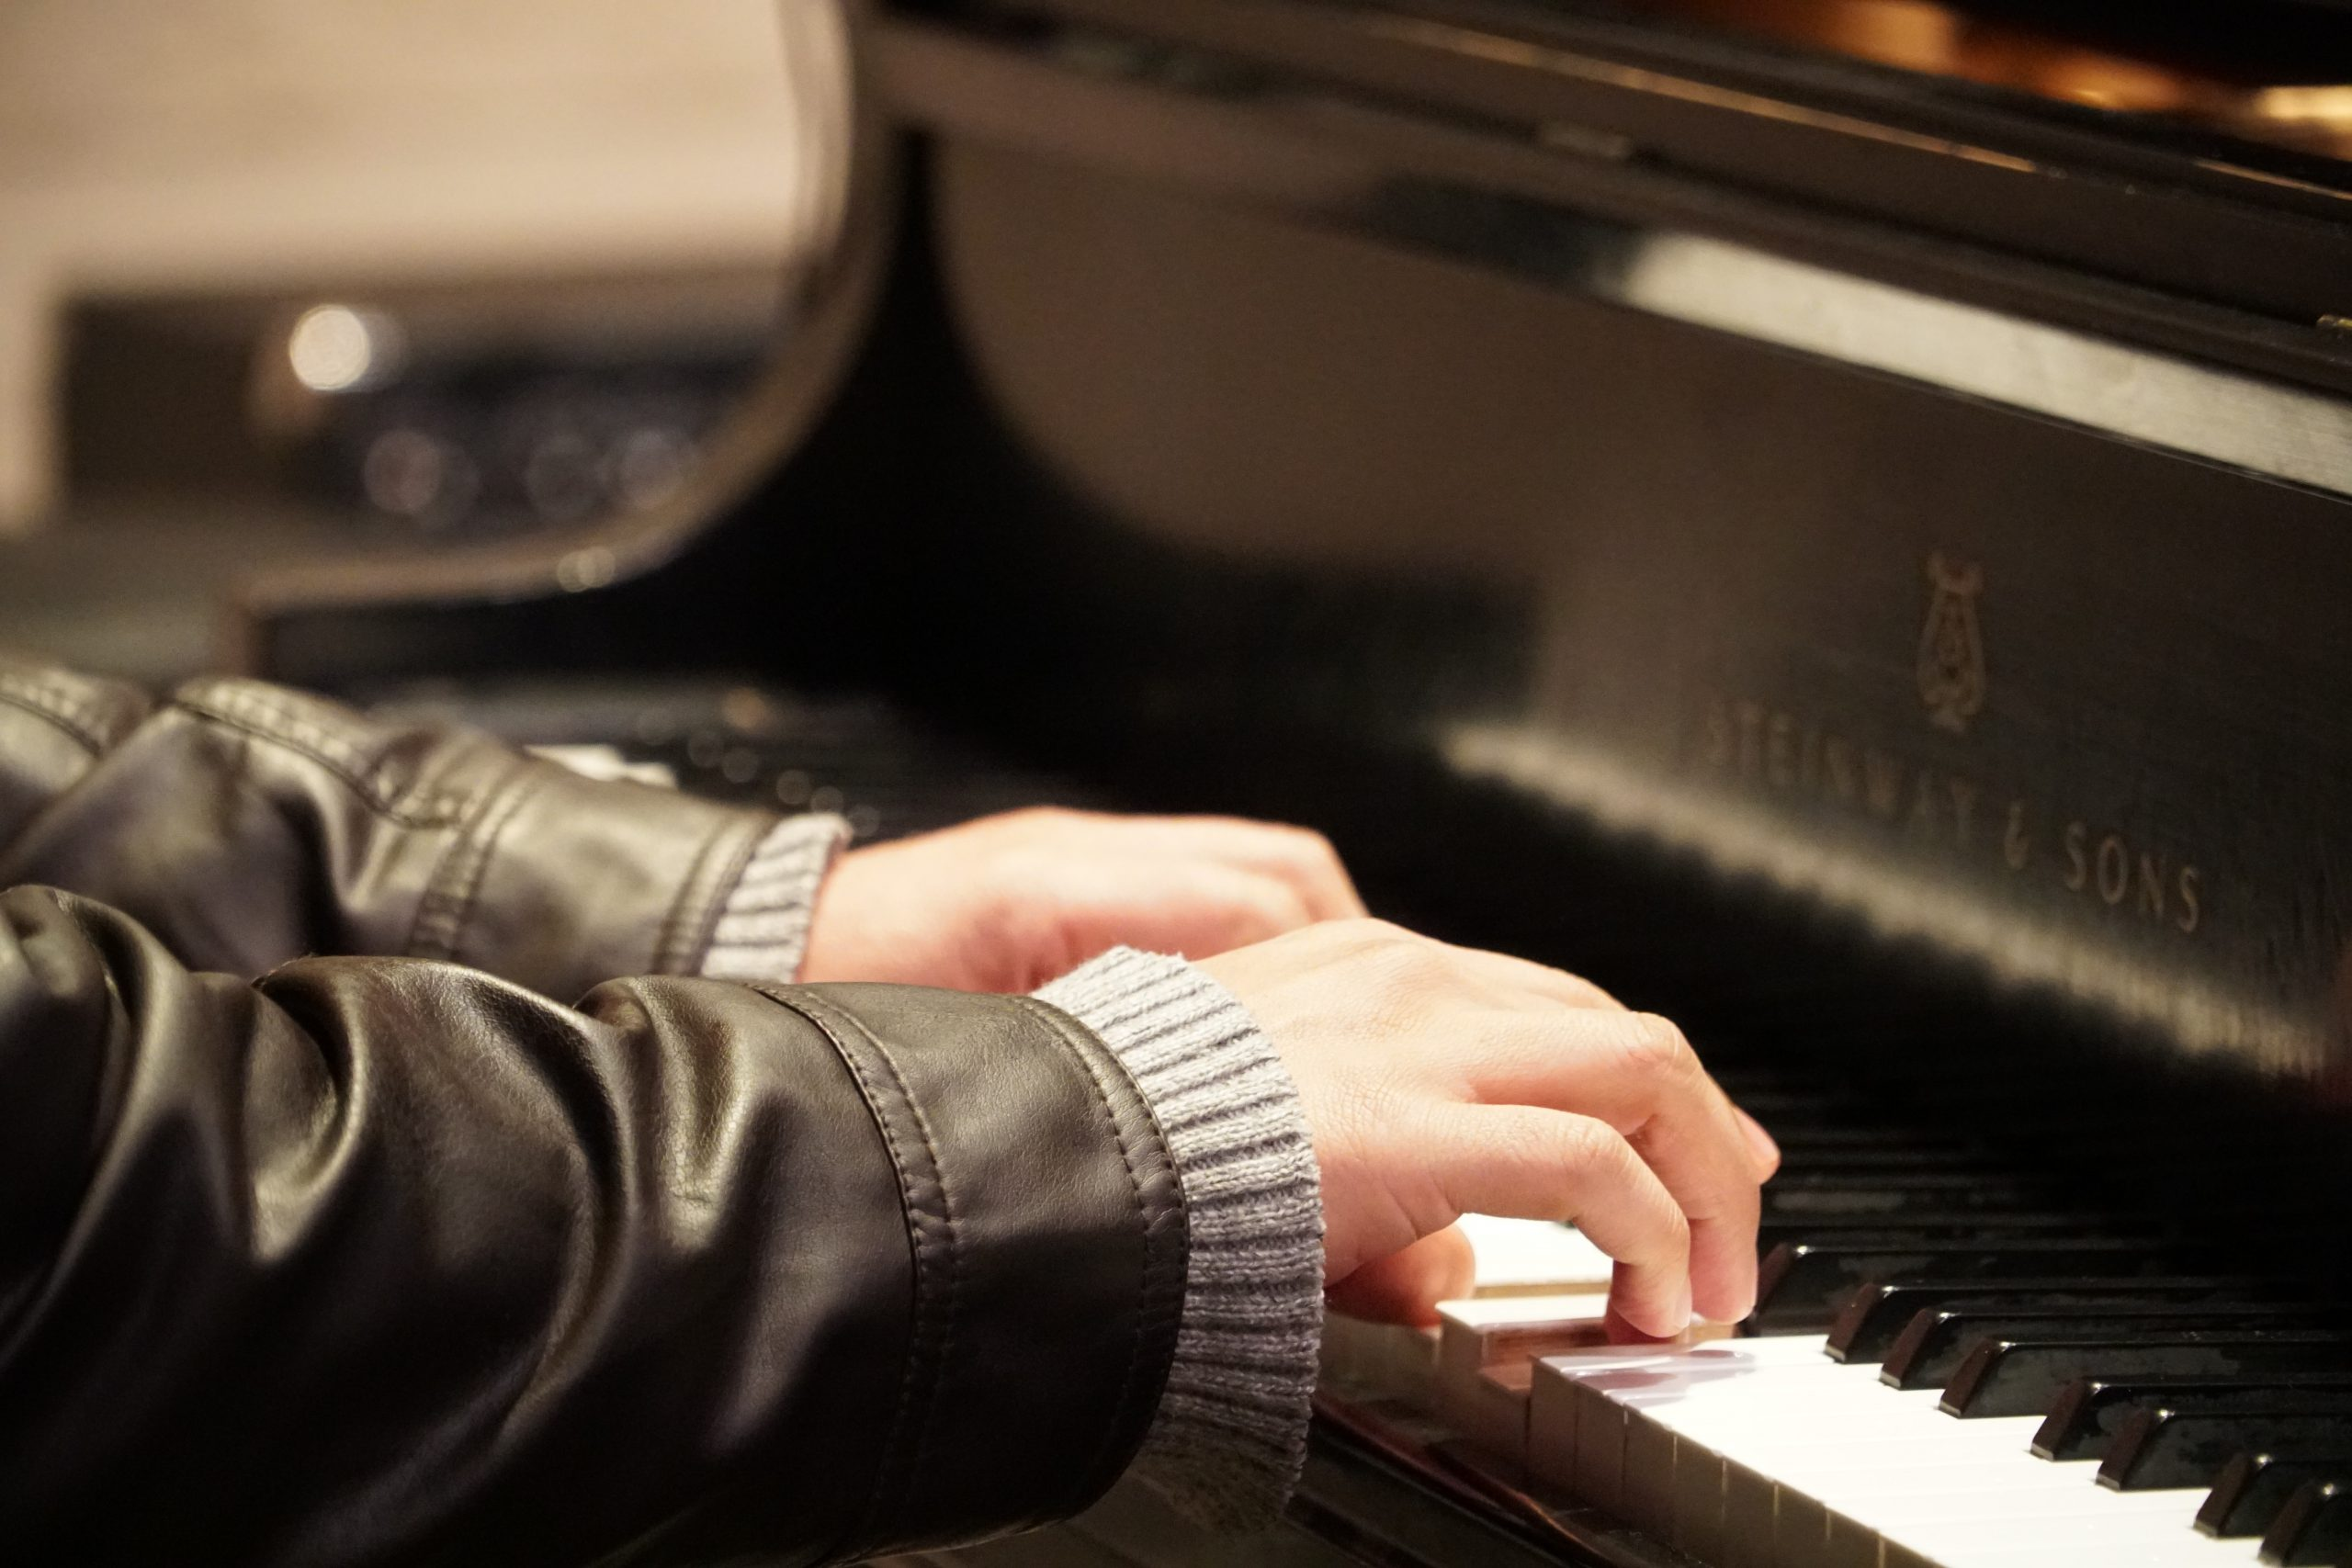 piano player with jacket and sweater